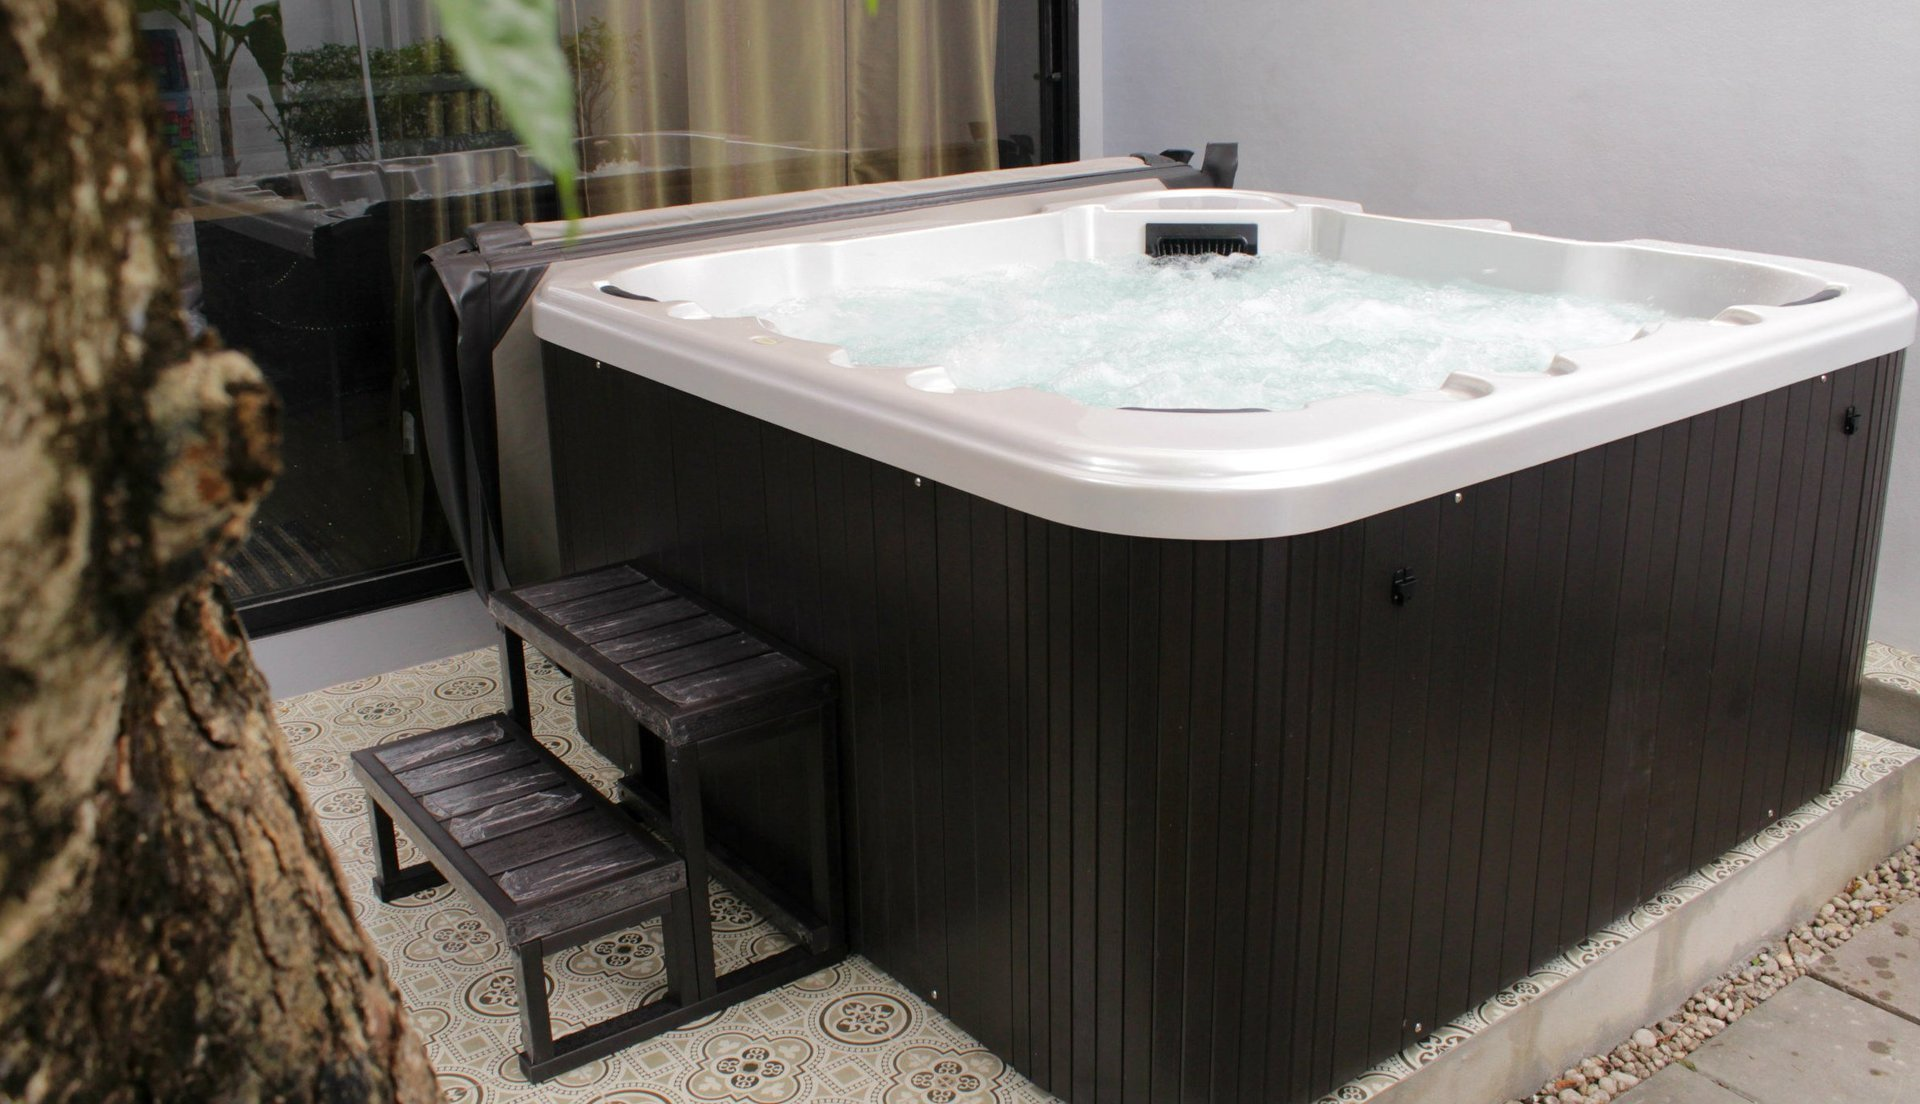 tubs walmart co plug en canada n play ph outdoor lower person living and in tub hot spa saunas canadian se halifax